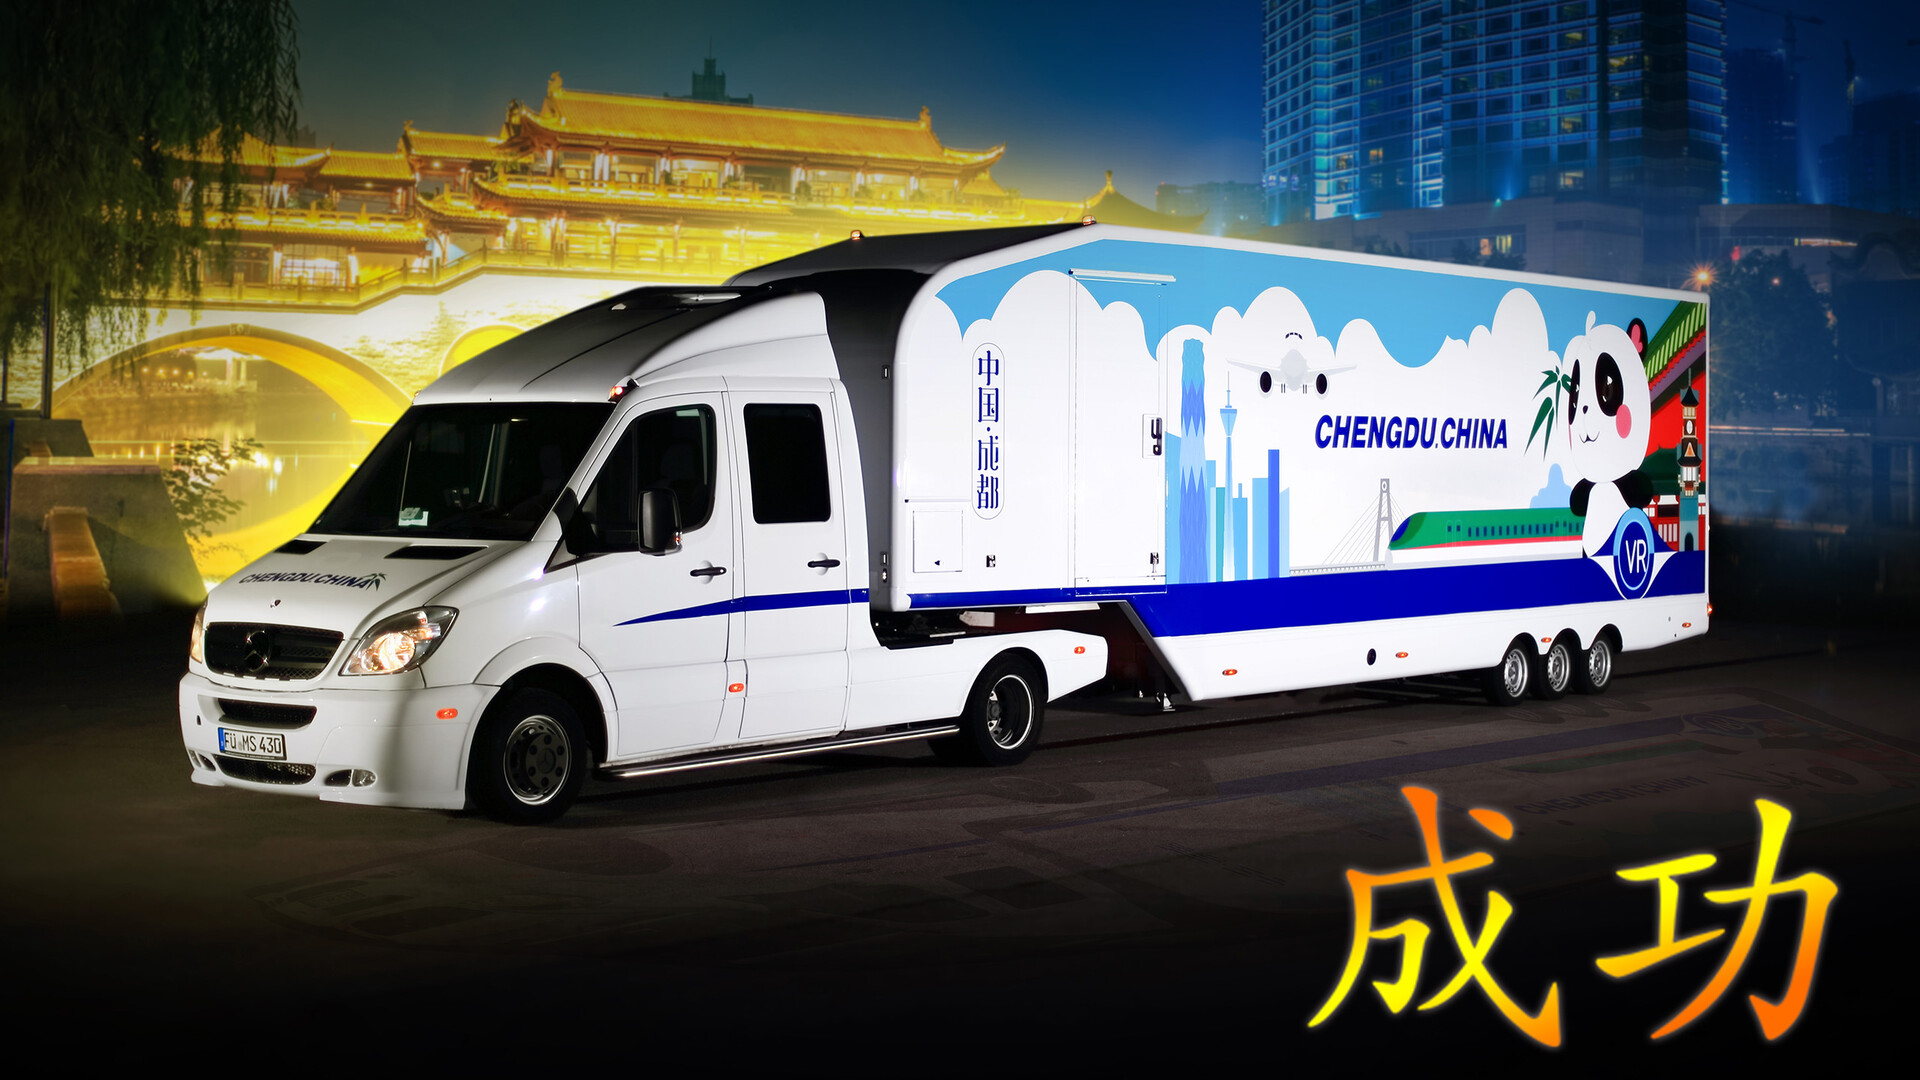 chengdu-1-showtruck-branding-most_mobile.jpg